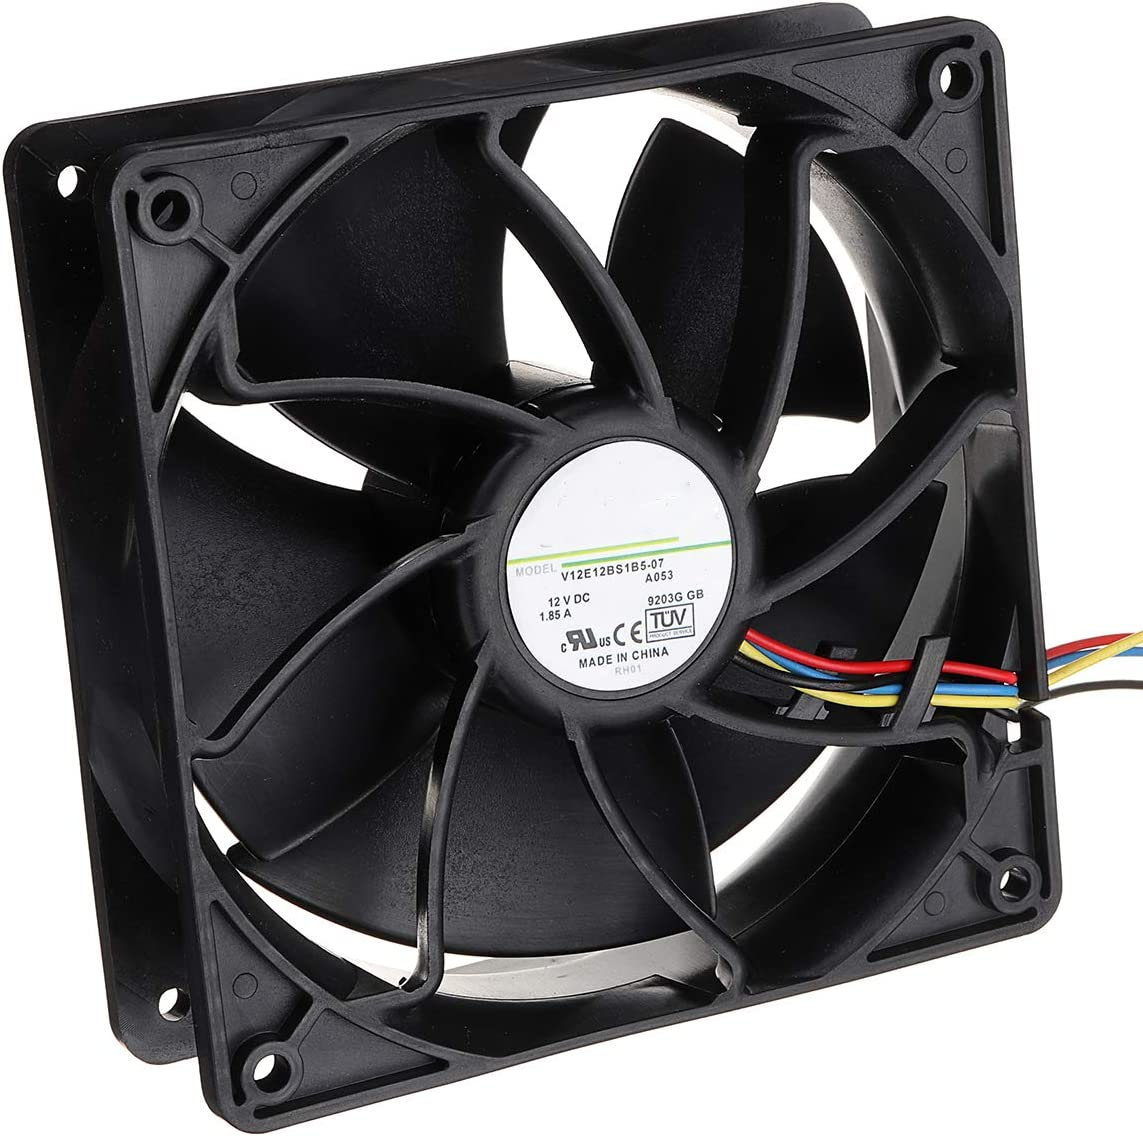 6500RPM Cooling Fan Vovomay Replacement 4-pin Connector for Antminer Bitmain S7 S9